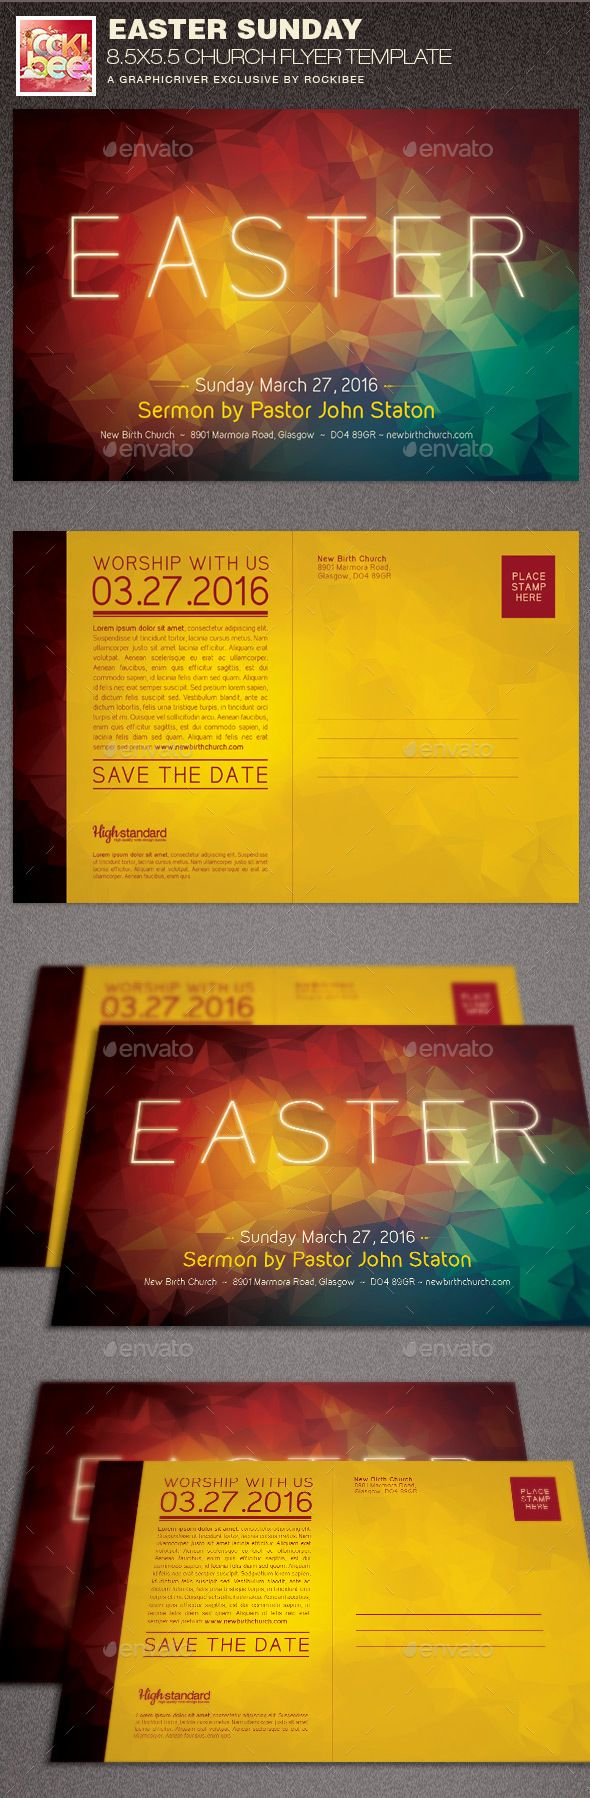 Easter Sunday Church Flyer Template